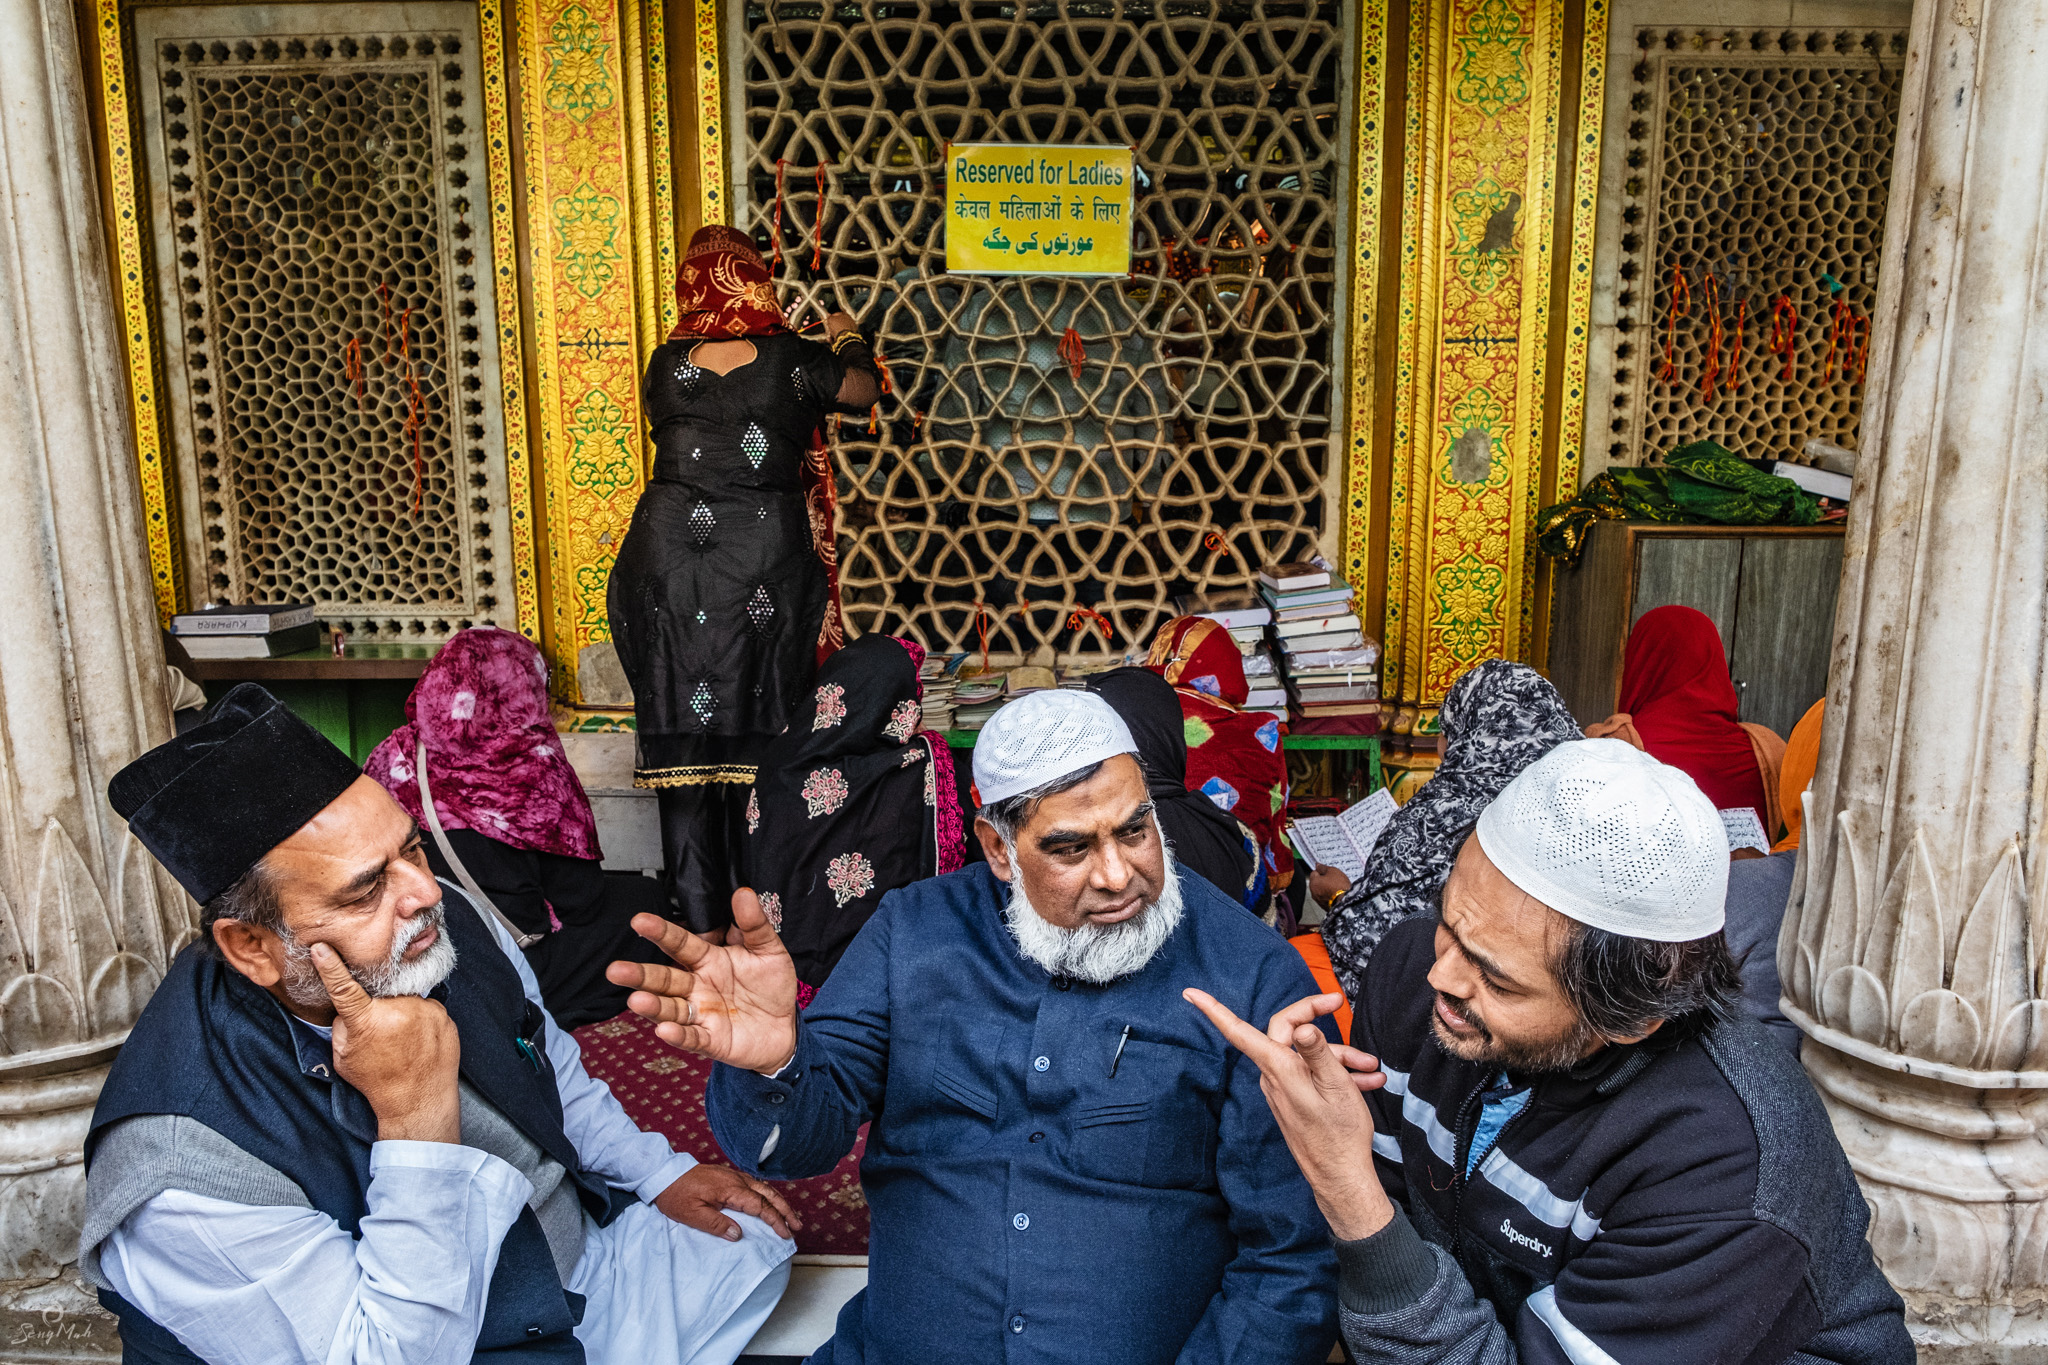 Prayer sections in Nizamuddin's Shrine